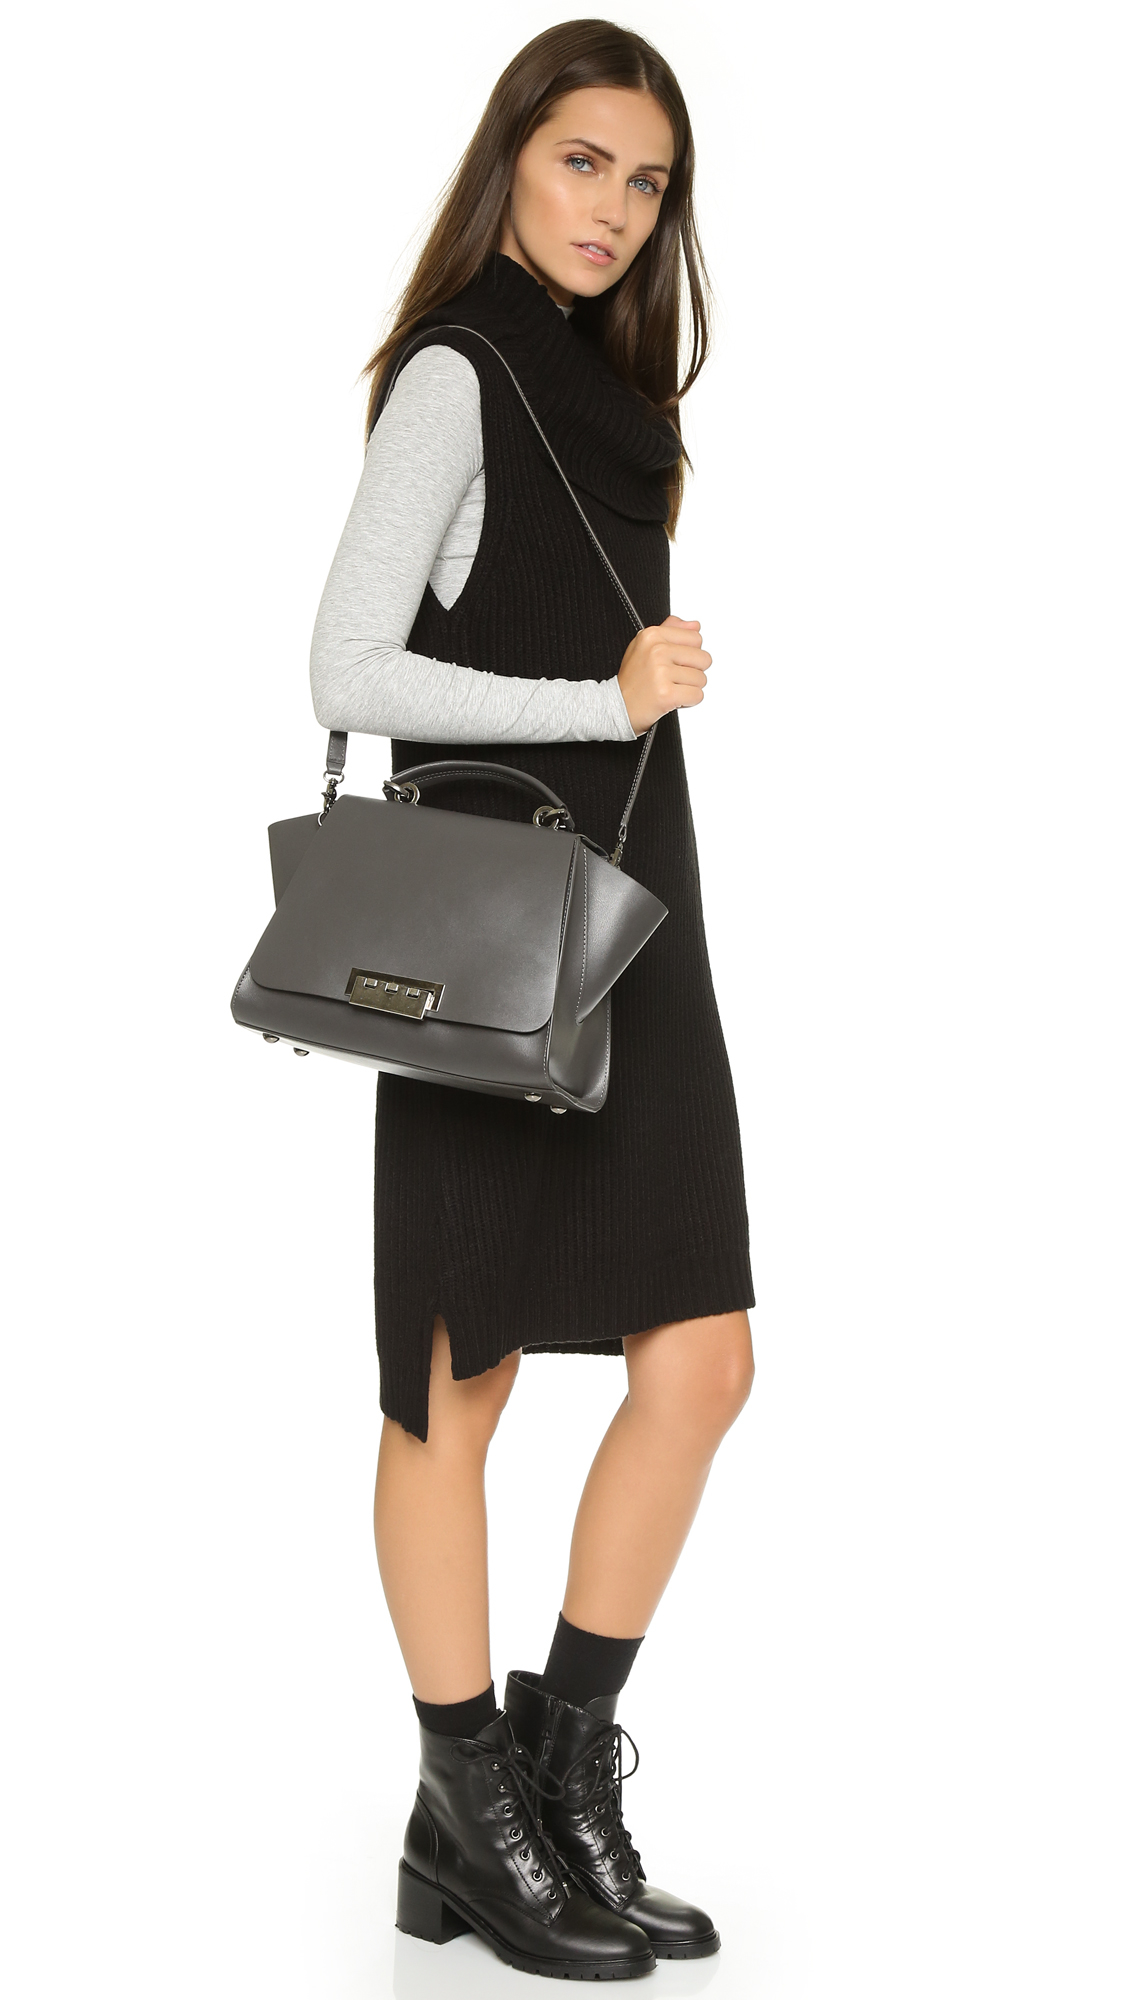 Zac Zac Posen Eartha Iconic Soft Top Handle Bag Charcoal